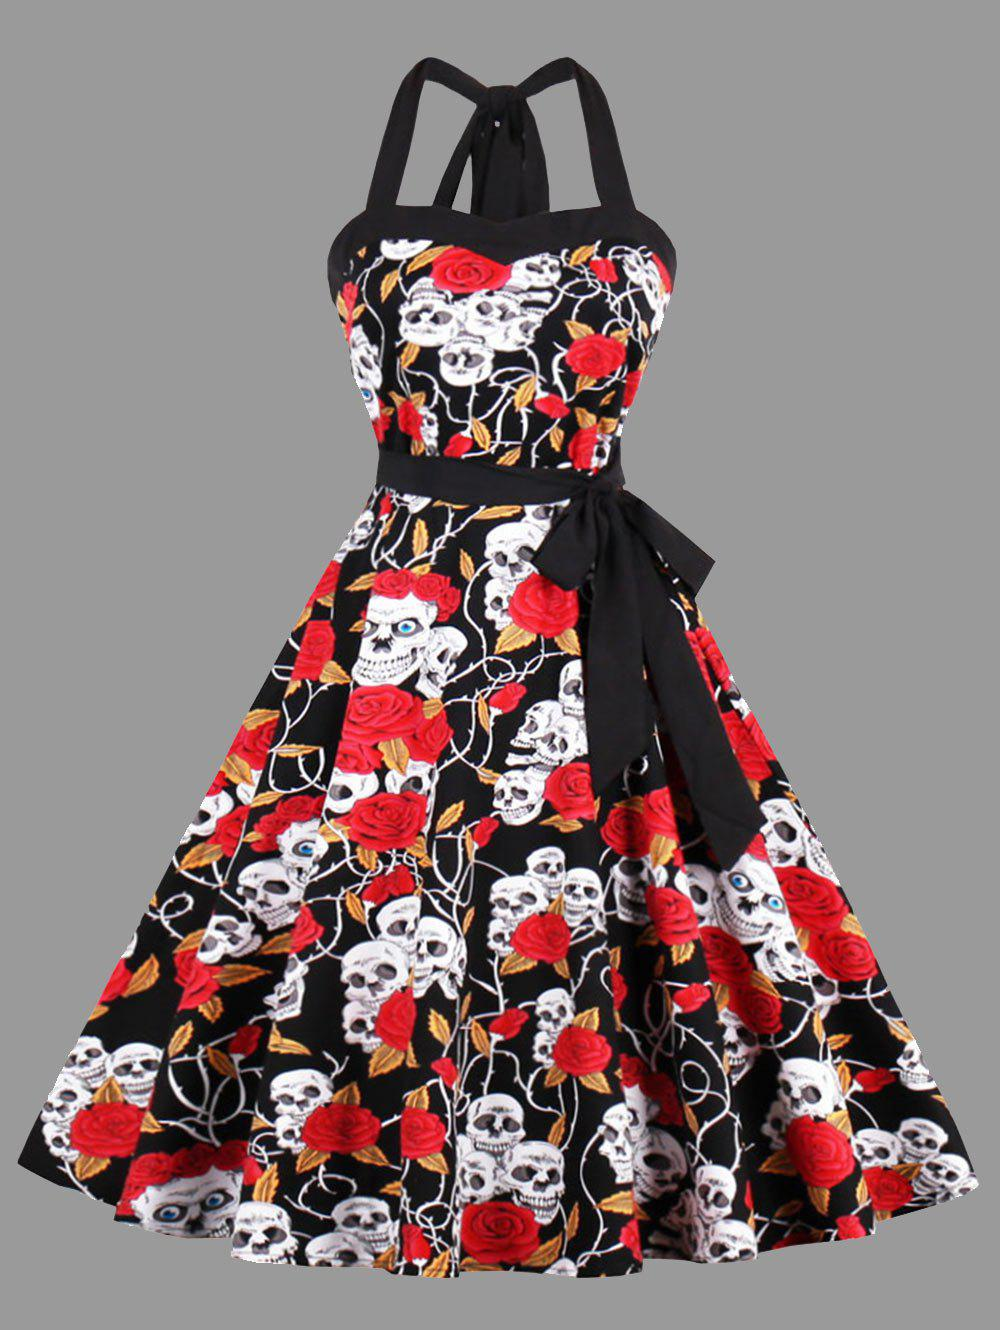 Affordable Halter Floral Skull Print Plus Size Vintage Dress